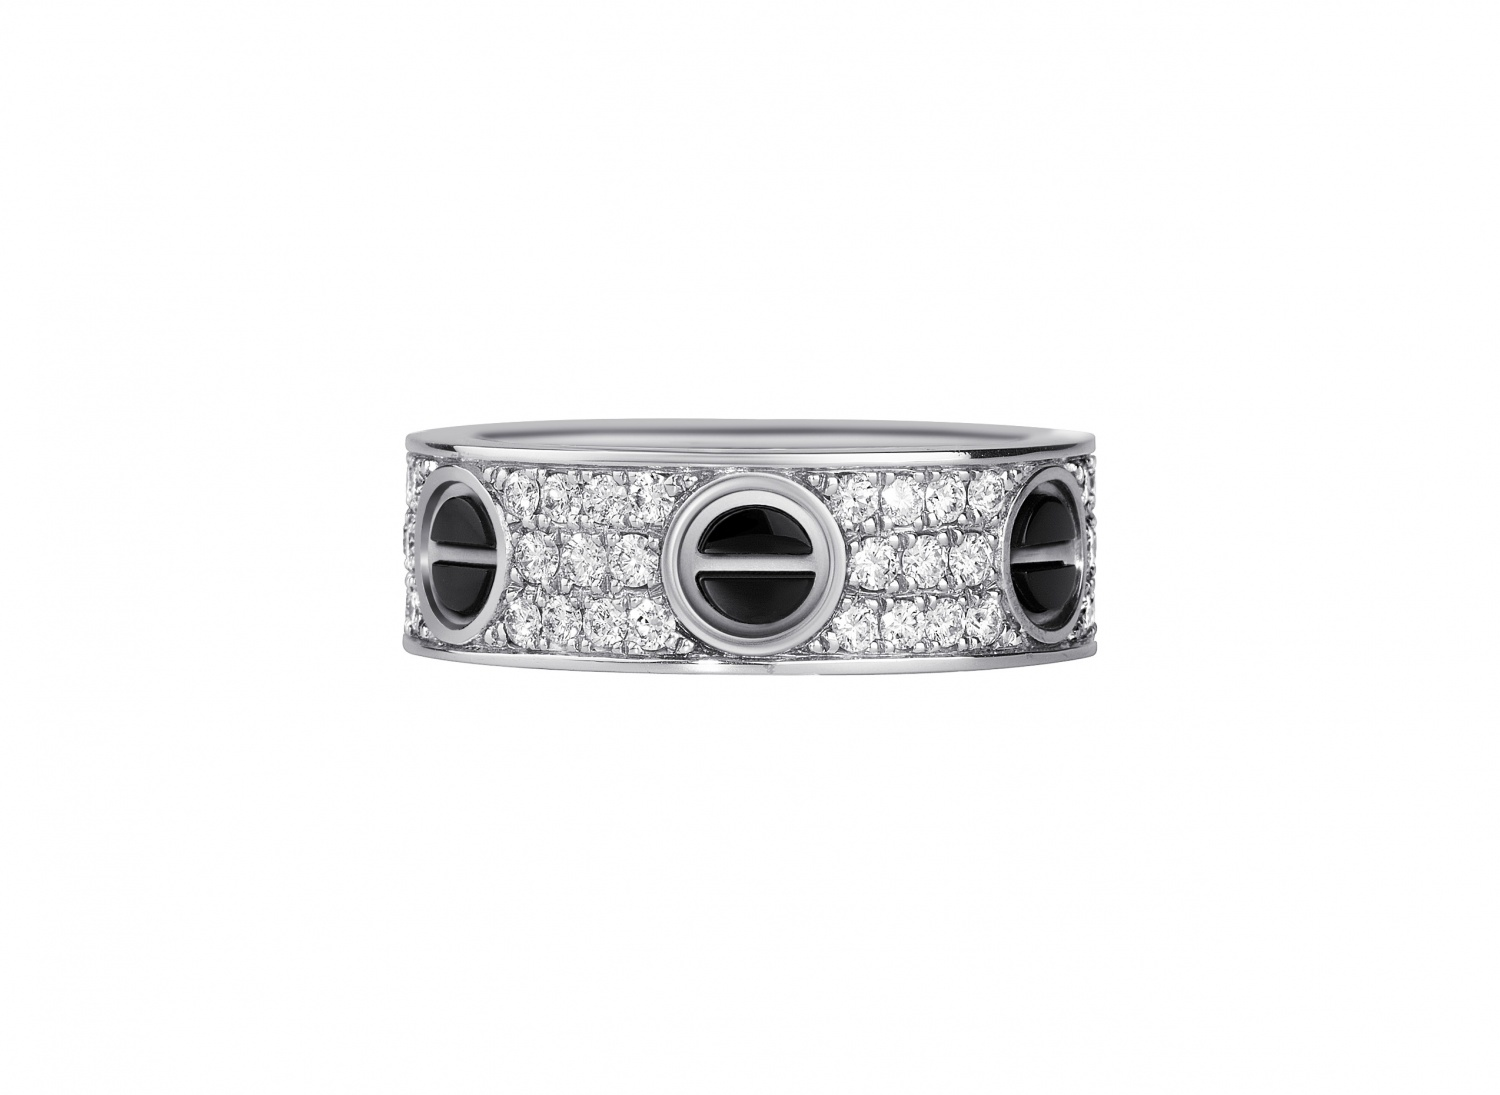 Cartier-Rings-from-the-Love-collection-White-gold-set-with-stones-black-ceramic